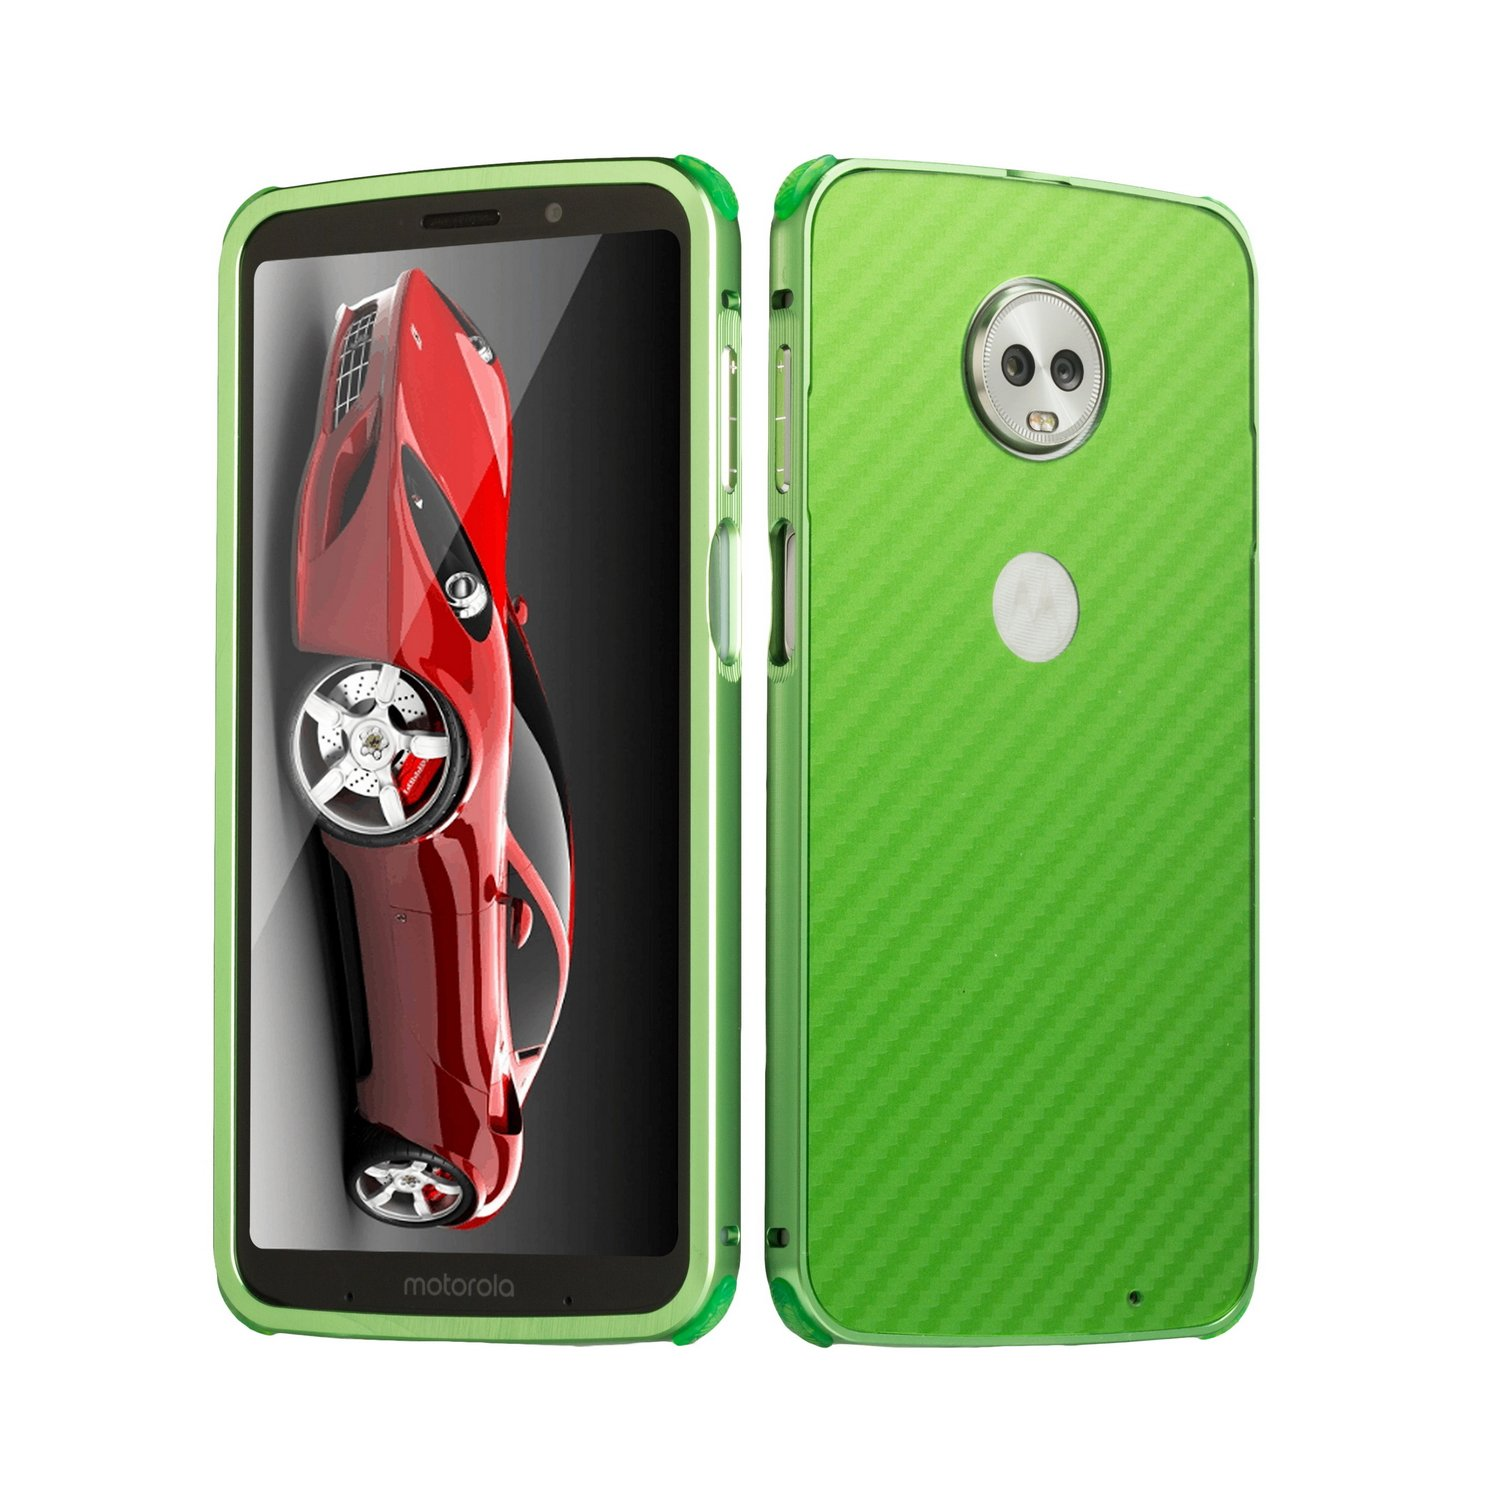 DAMONDY Moto Z3 Play Case, Luxury Carbon Fiber Design Ultra thin Imitation Metal Brushed Premium Aluminum Shockproof Protective Bumper Hard Back Case Cover for Motorola Moto Z3 Play-Green